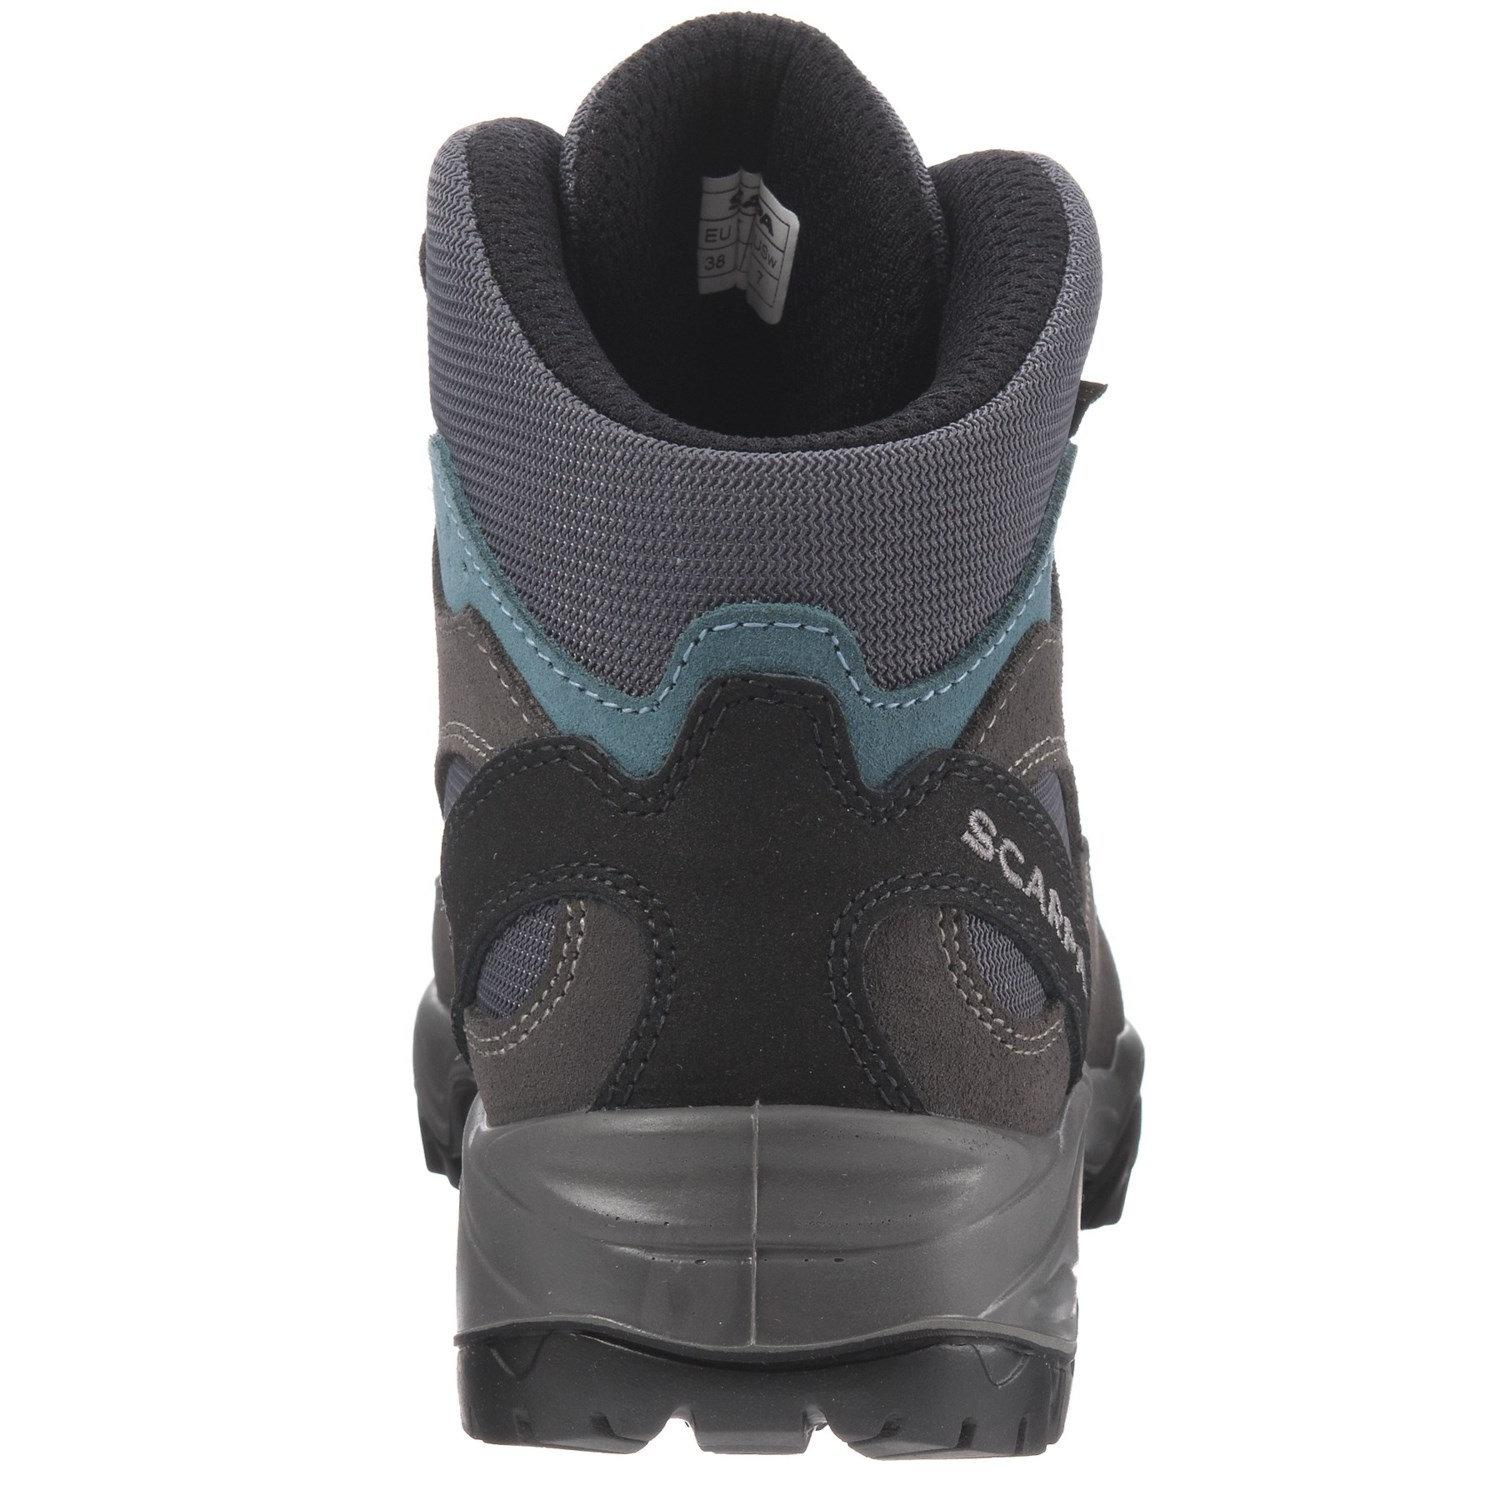 8bdcfabab67 Scarpa Made in Europe Mistral Gore-Tex® Hiking Boots - Waterproof (For  Women)